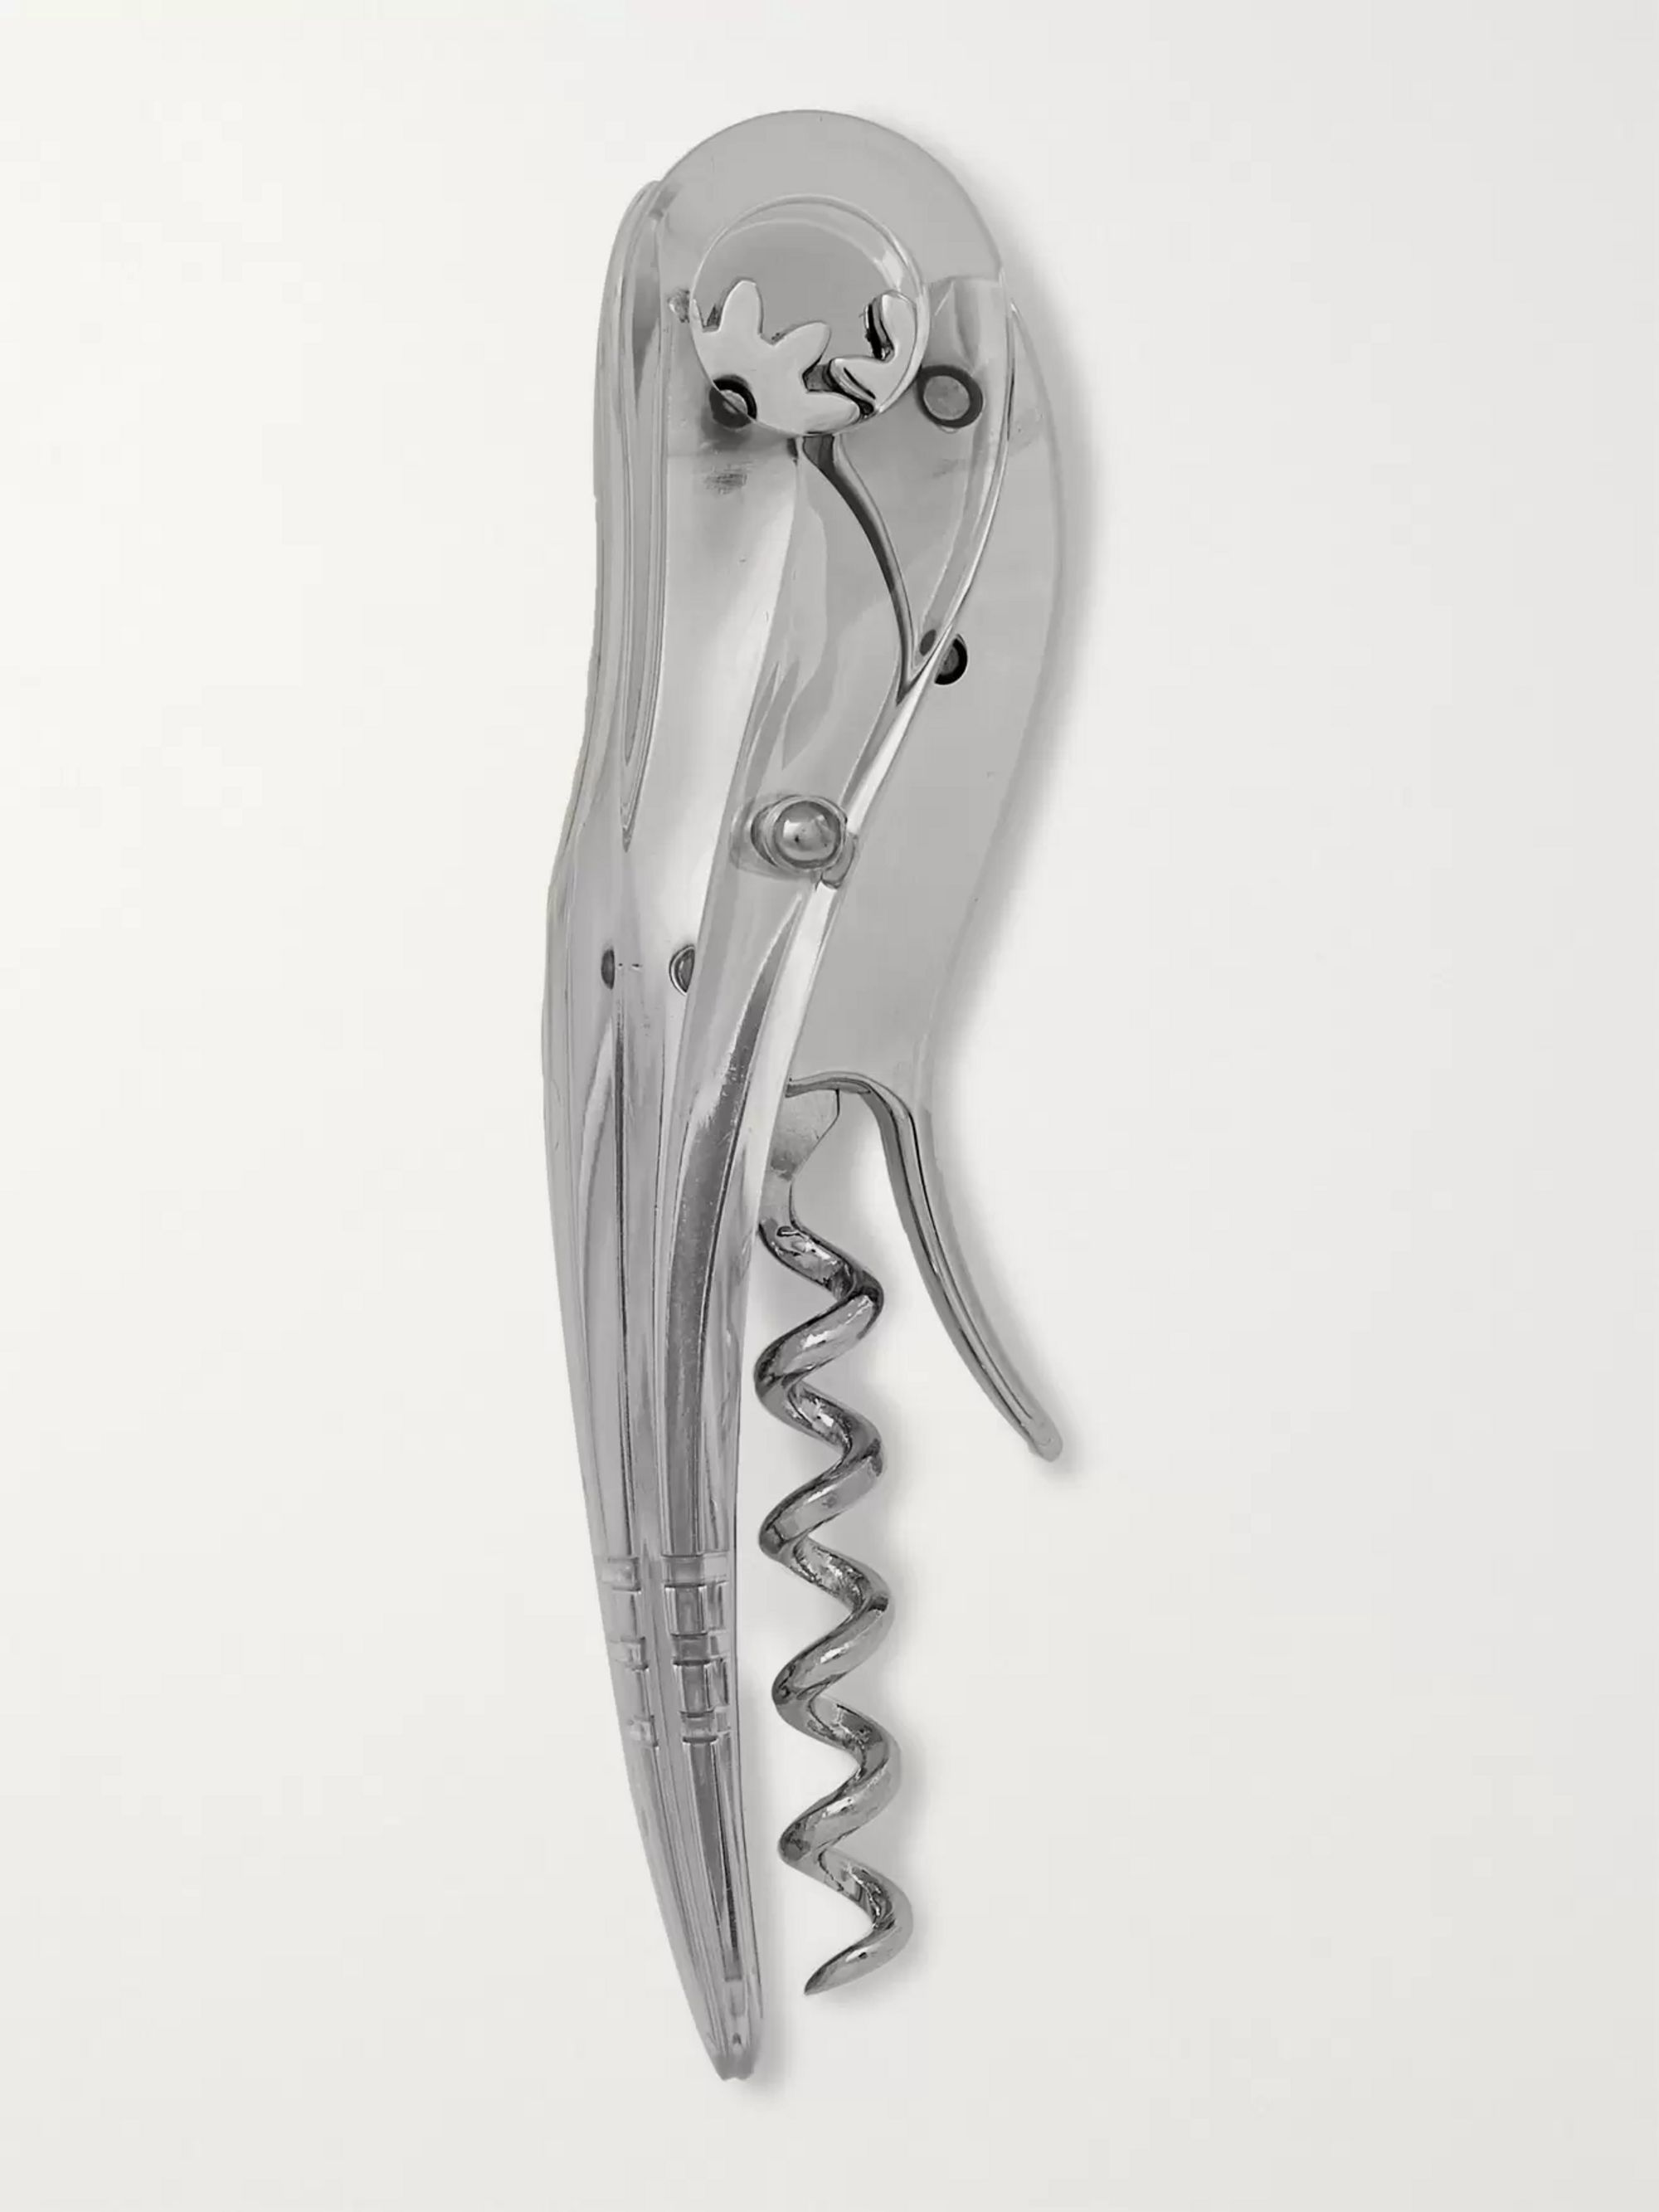 L'ATELIER DU VIN Soft Machine Crystal Corkscrew